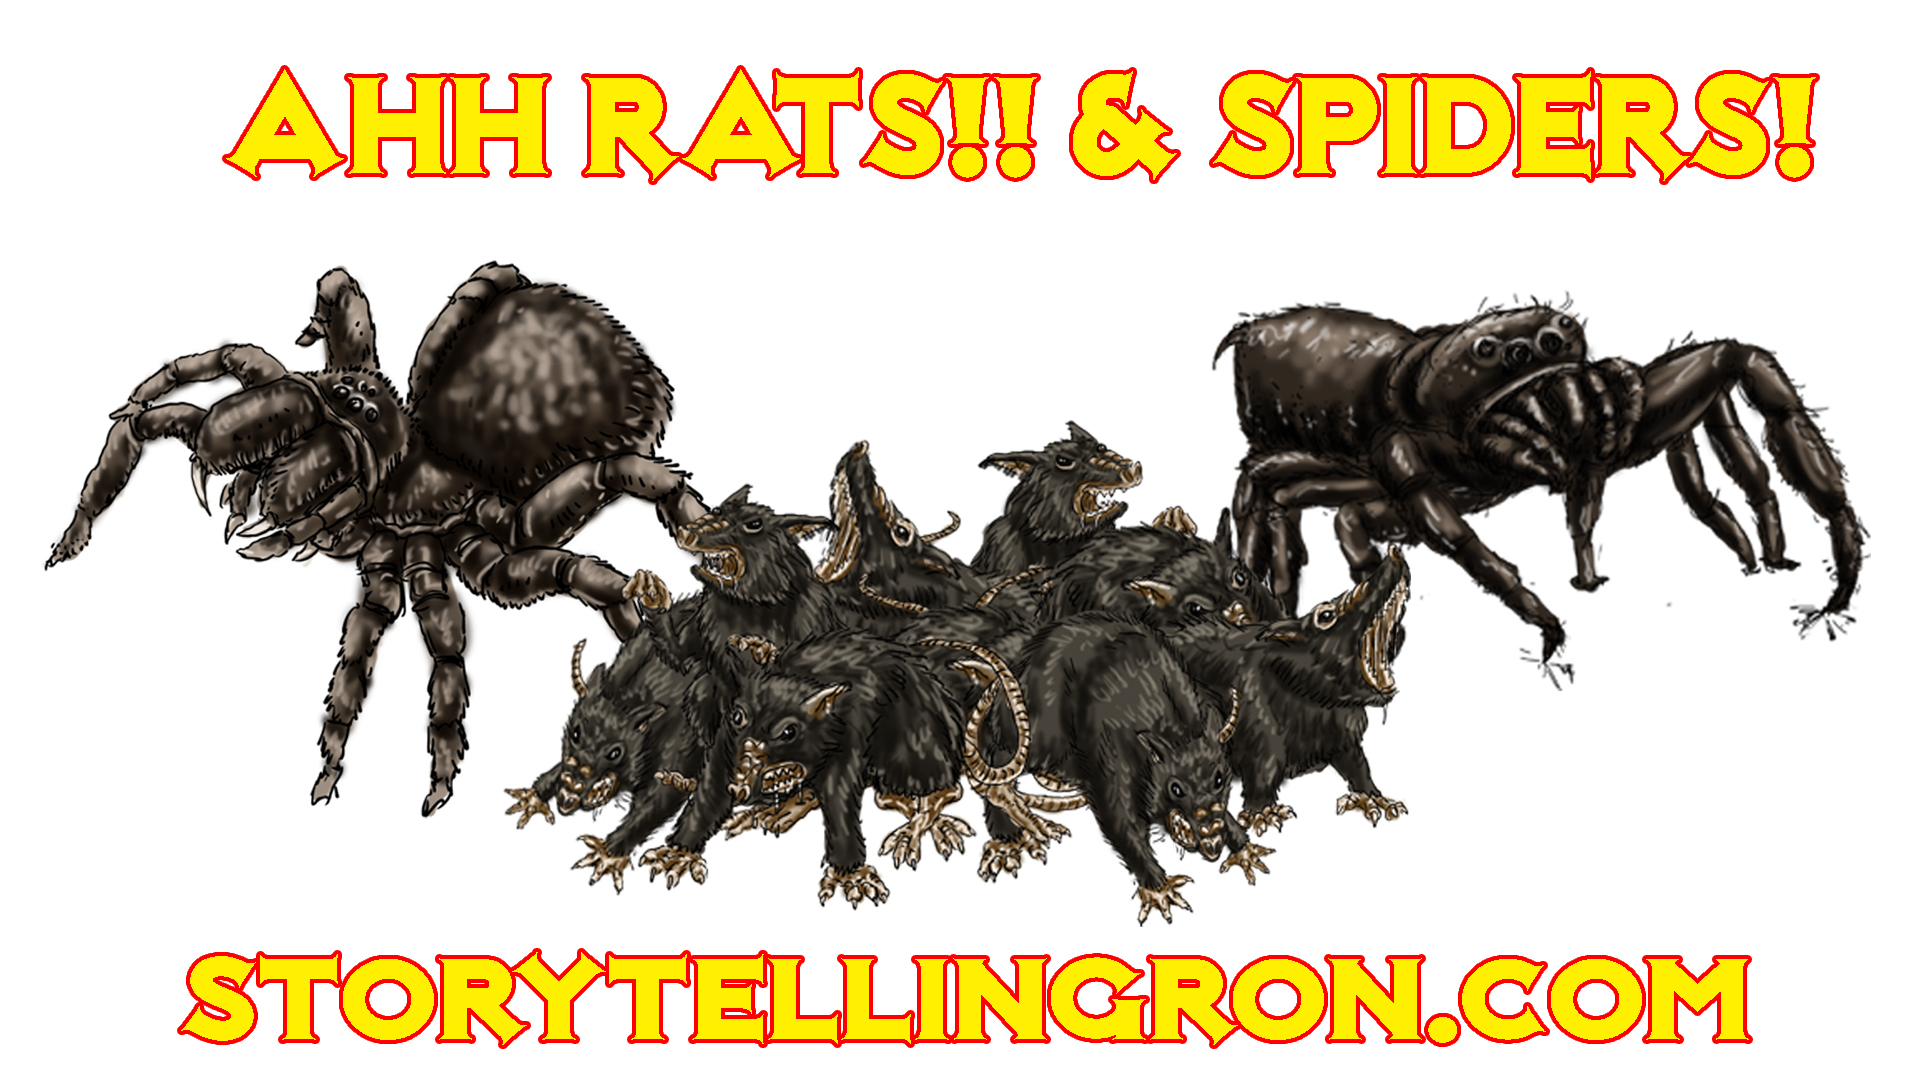 PROMO GROUP SHOT rats & spiders